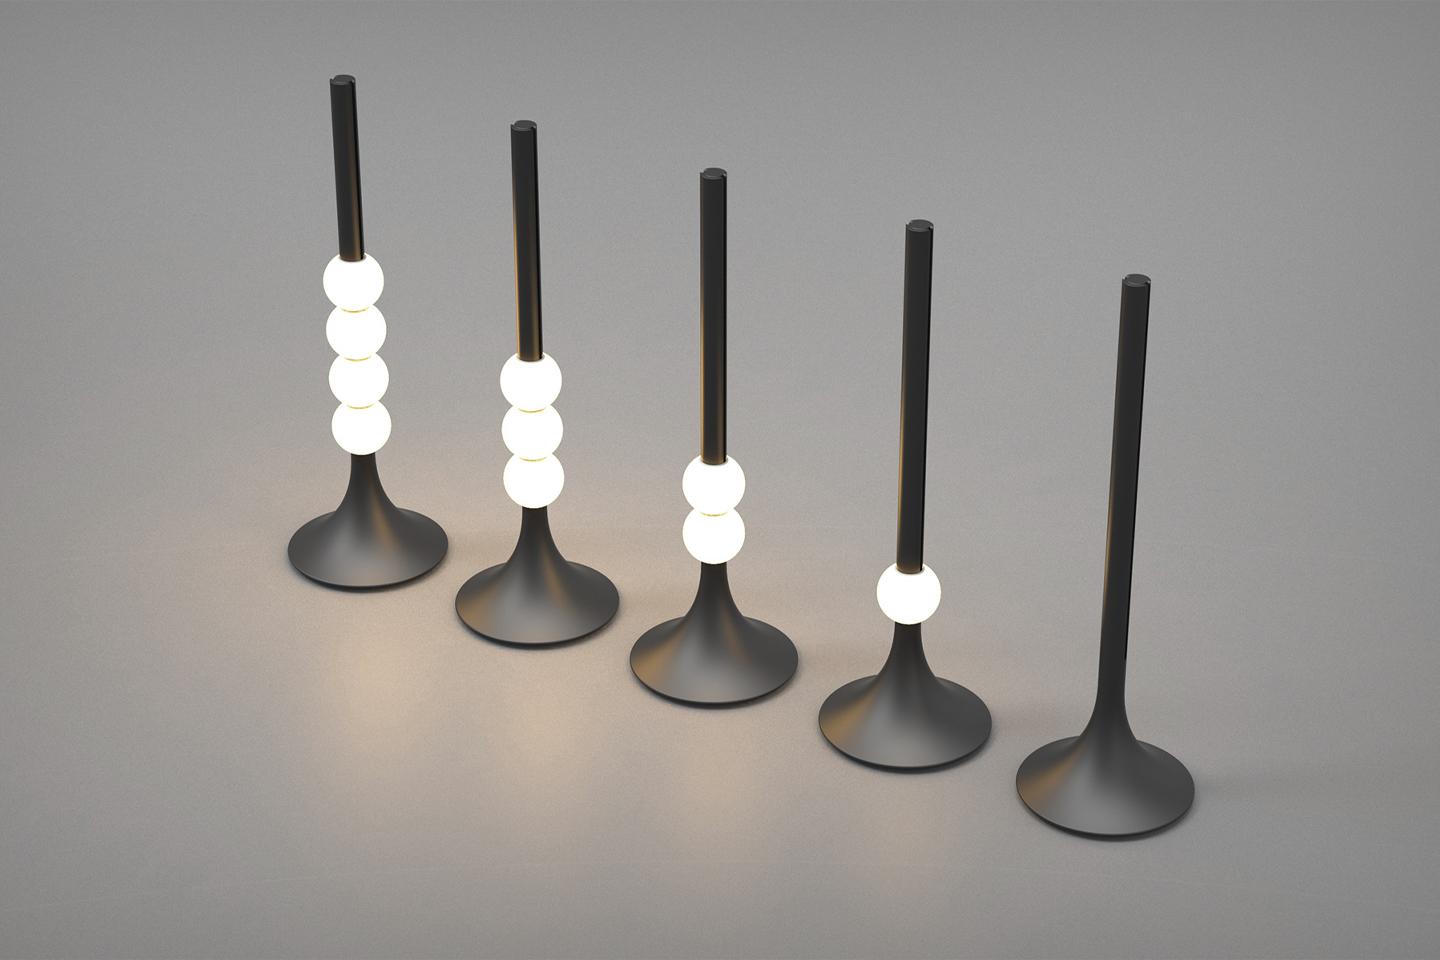 A modular light fixture inspired by the abacus lets you add, subtract and have fun with your light setup!